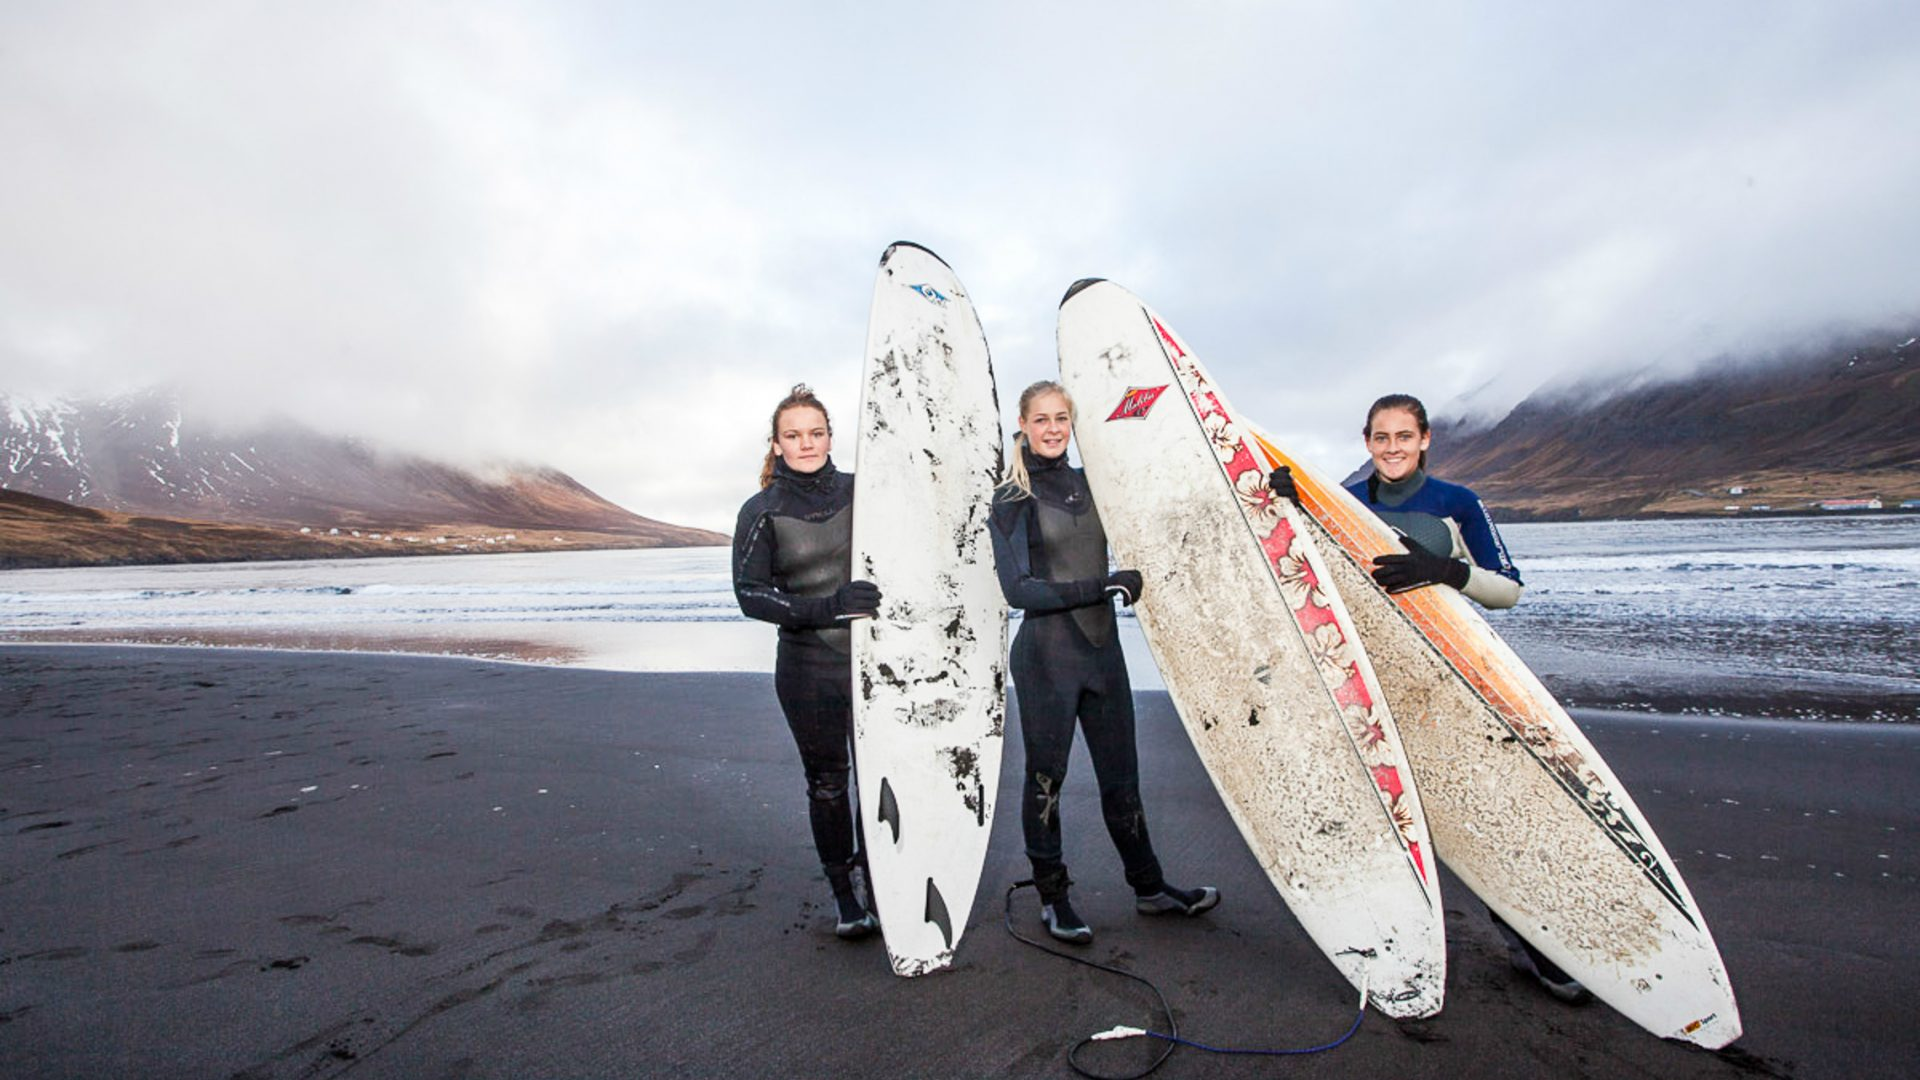 Surfers ready to brave Iceland's cold swells.